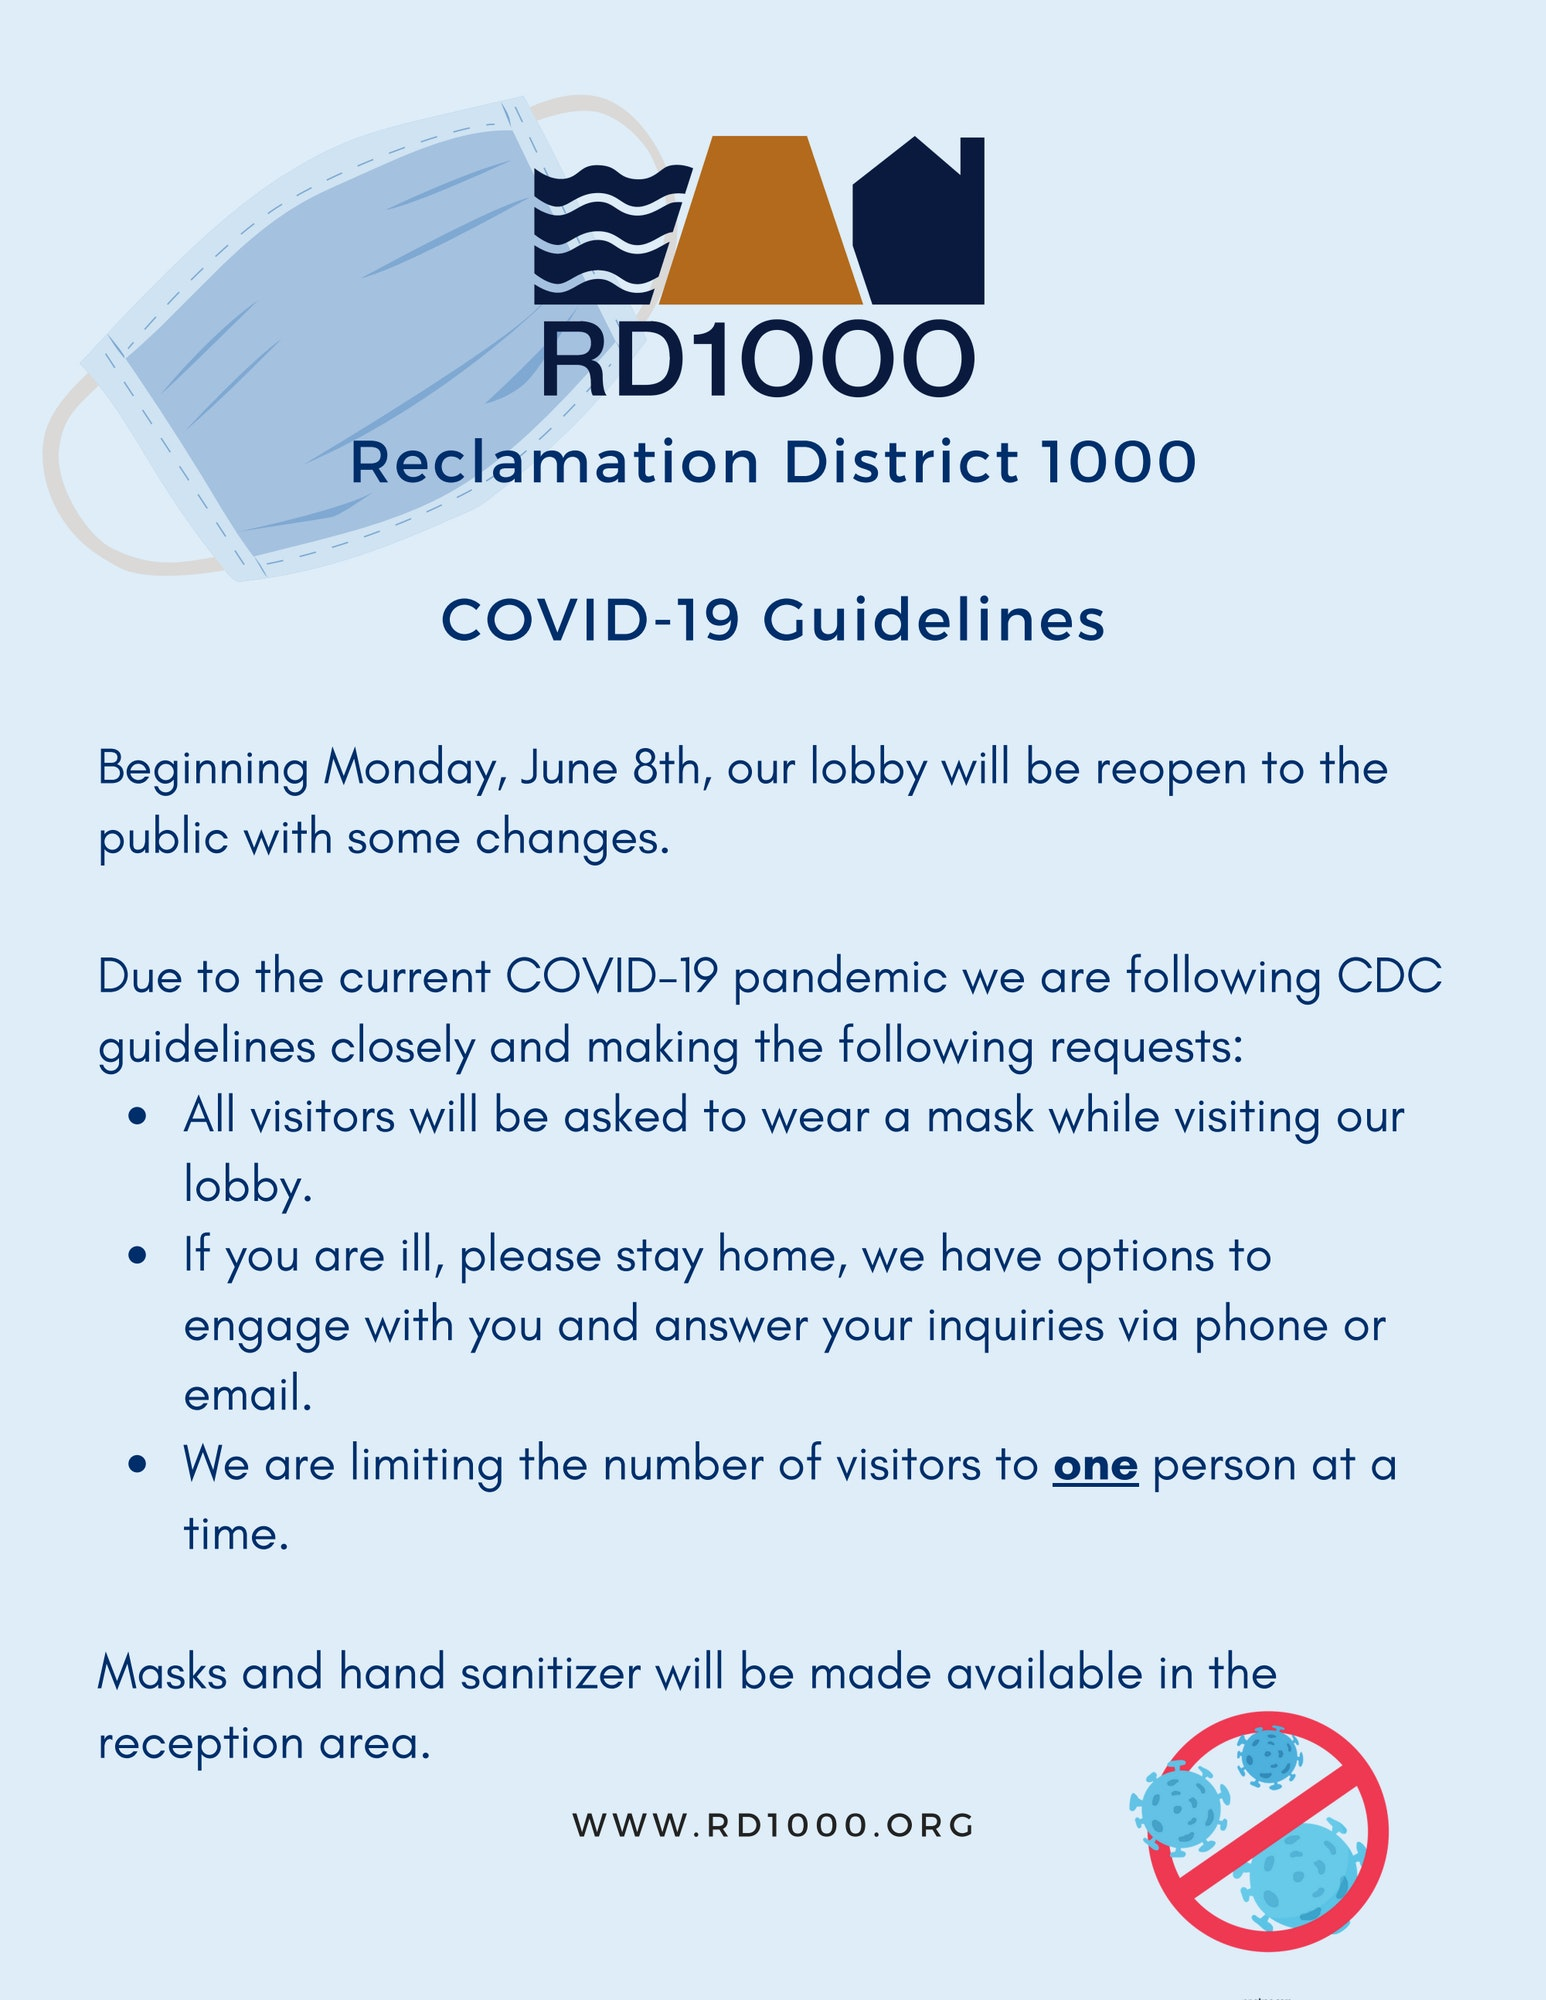 RD1000 covid 19 guidelines pdf